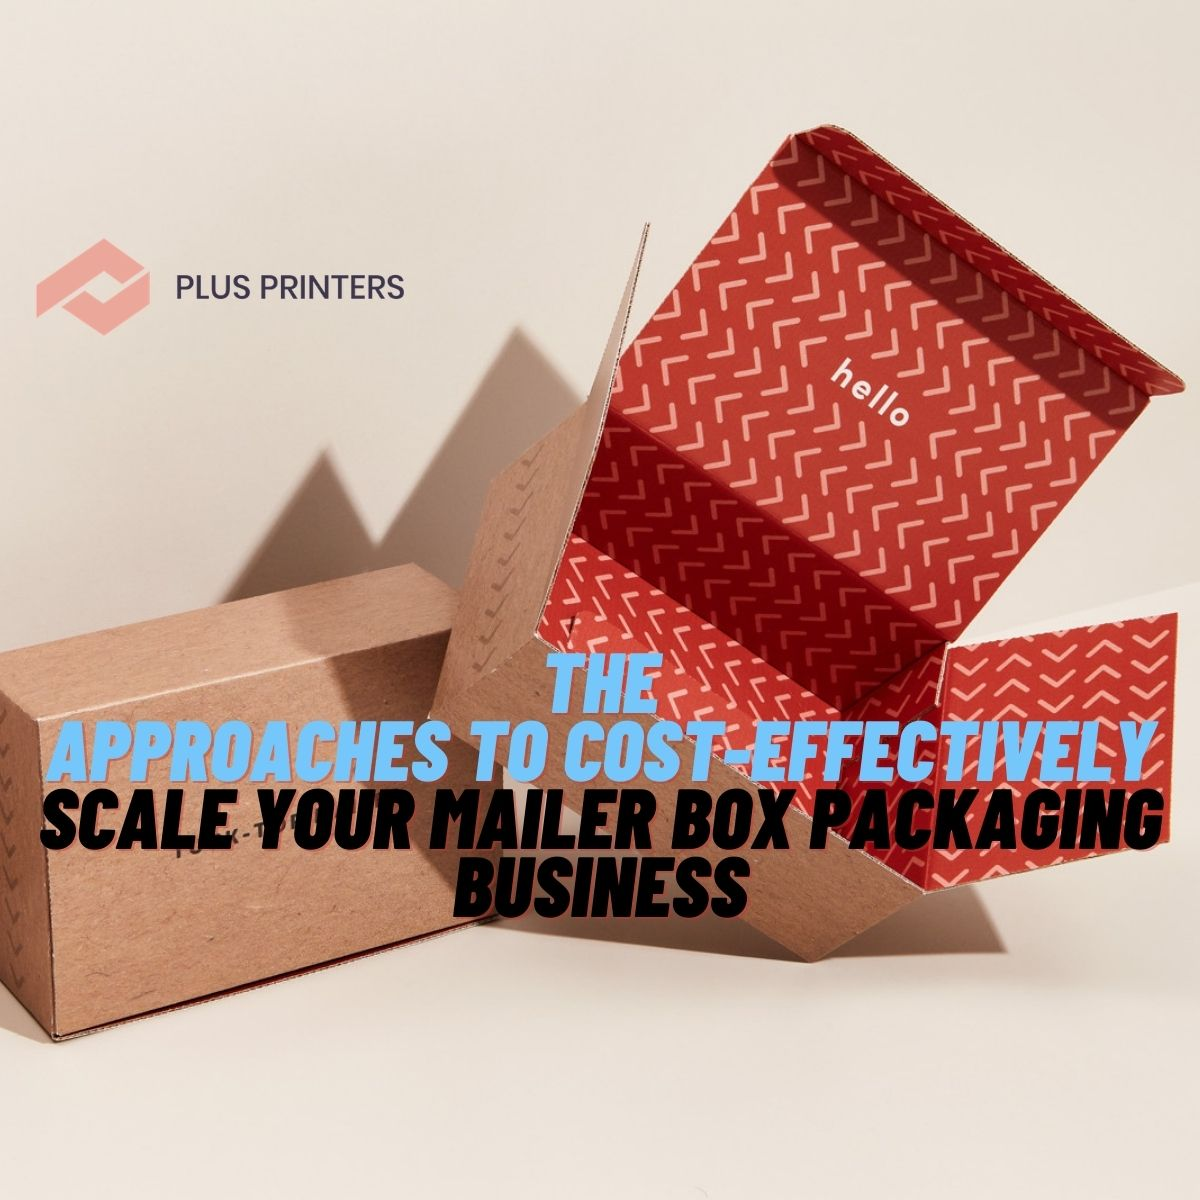 Scale Your Mailer Box Packaging Business